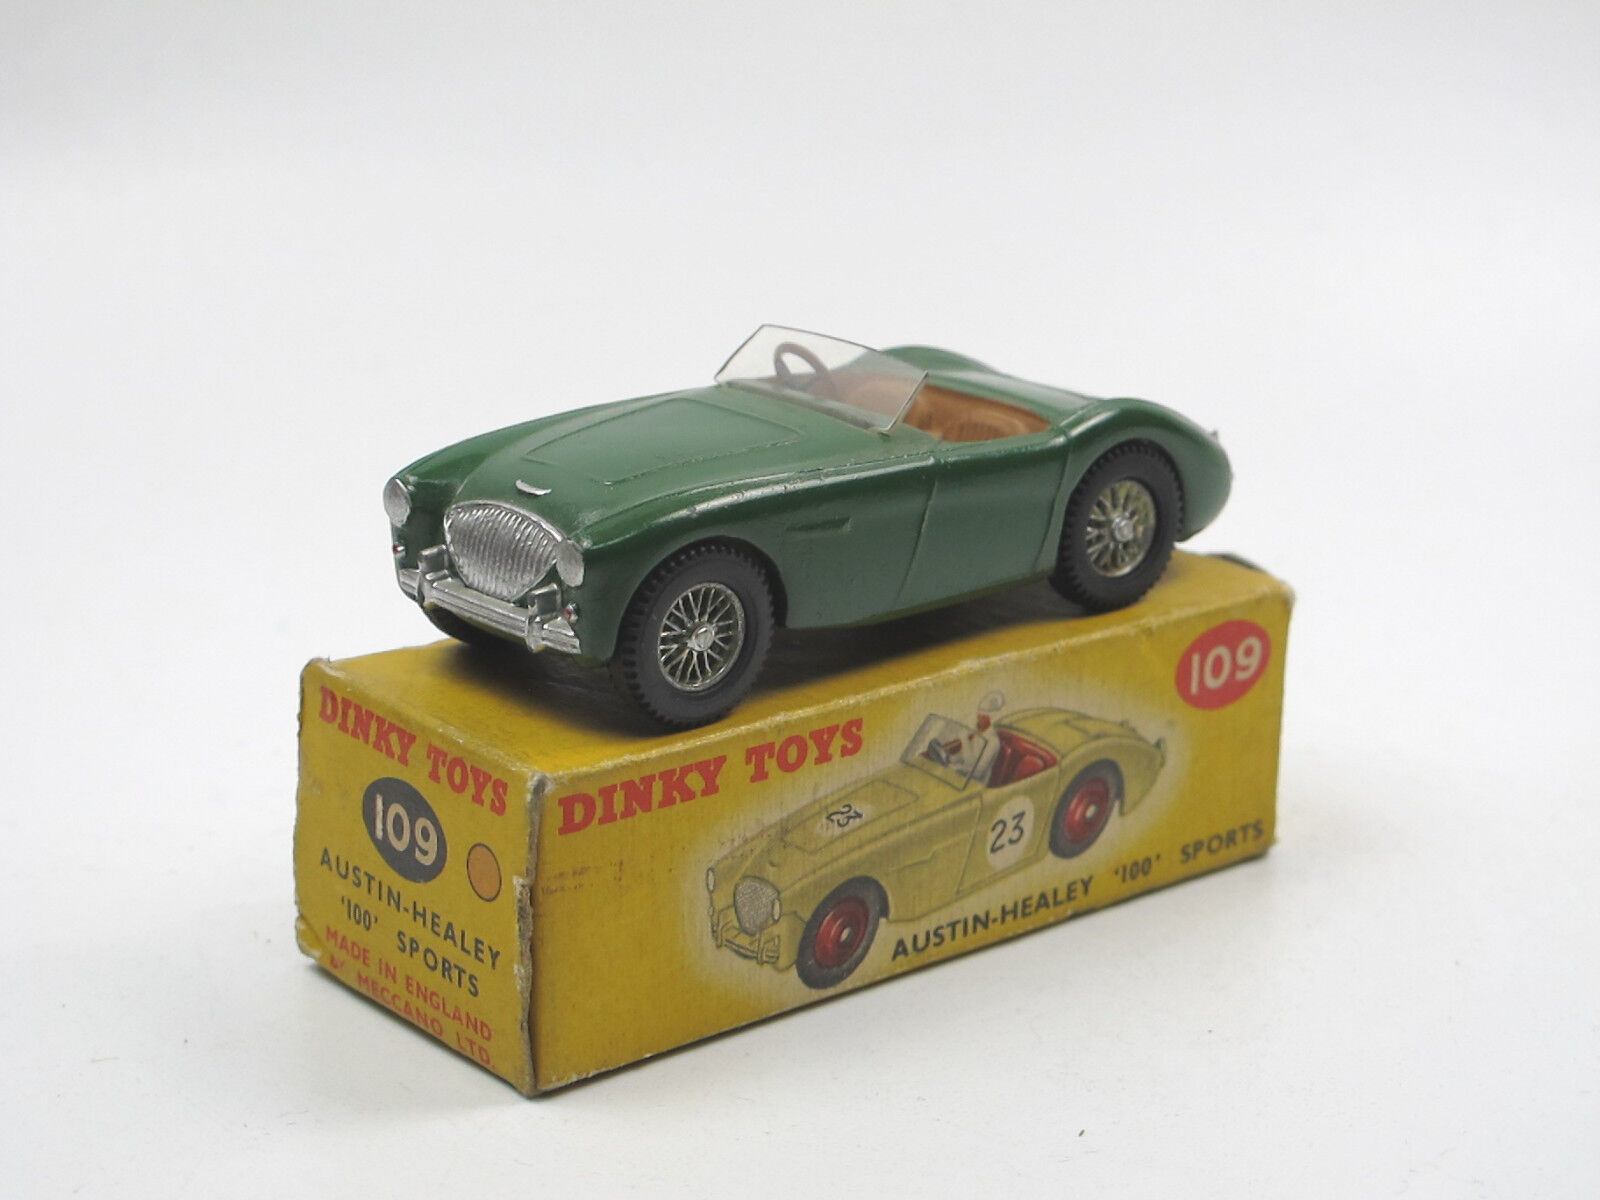 VINTAGE DINKY TOYS 109 Austin Healey 100 Sports Car verde-restaurato in scatola originale